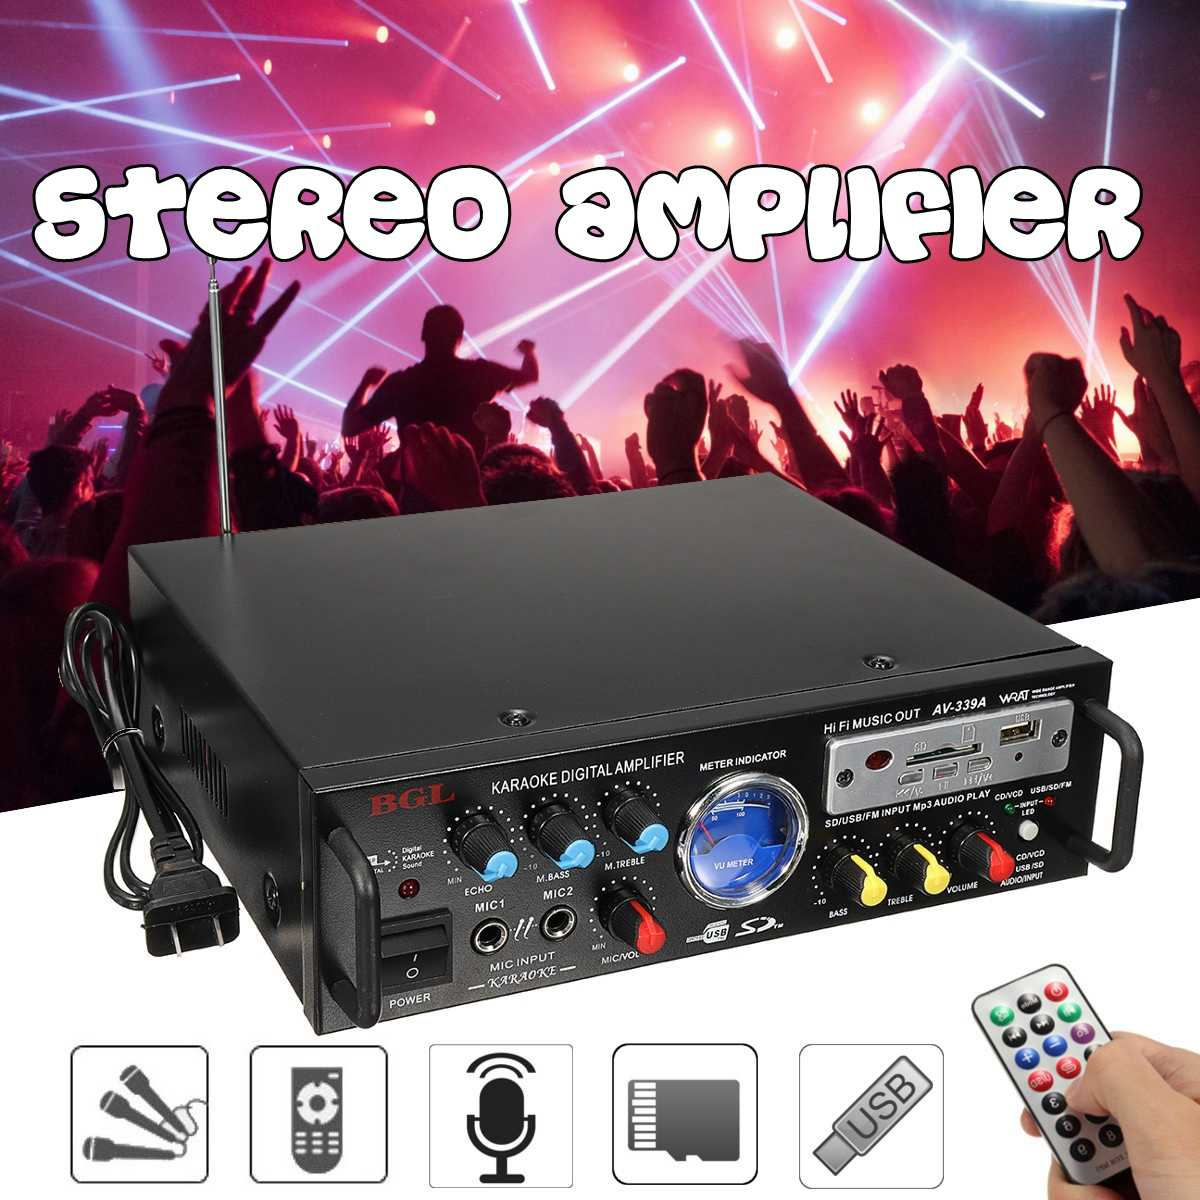 CLAITE 2019 Latest 12V 220V 80W Mini Power Stereo Amplifier Home High Power Audio Amplifier Music Player